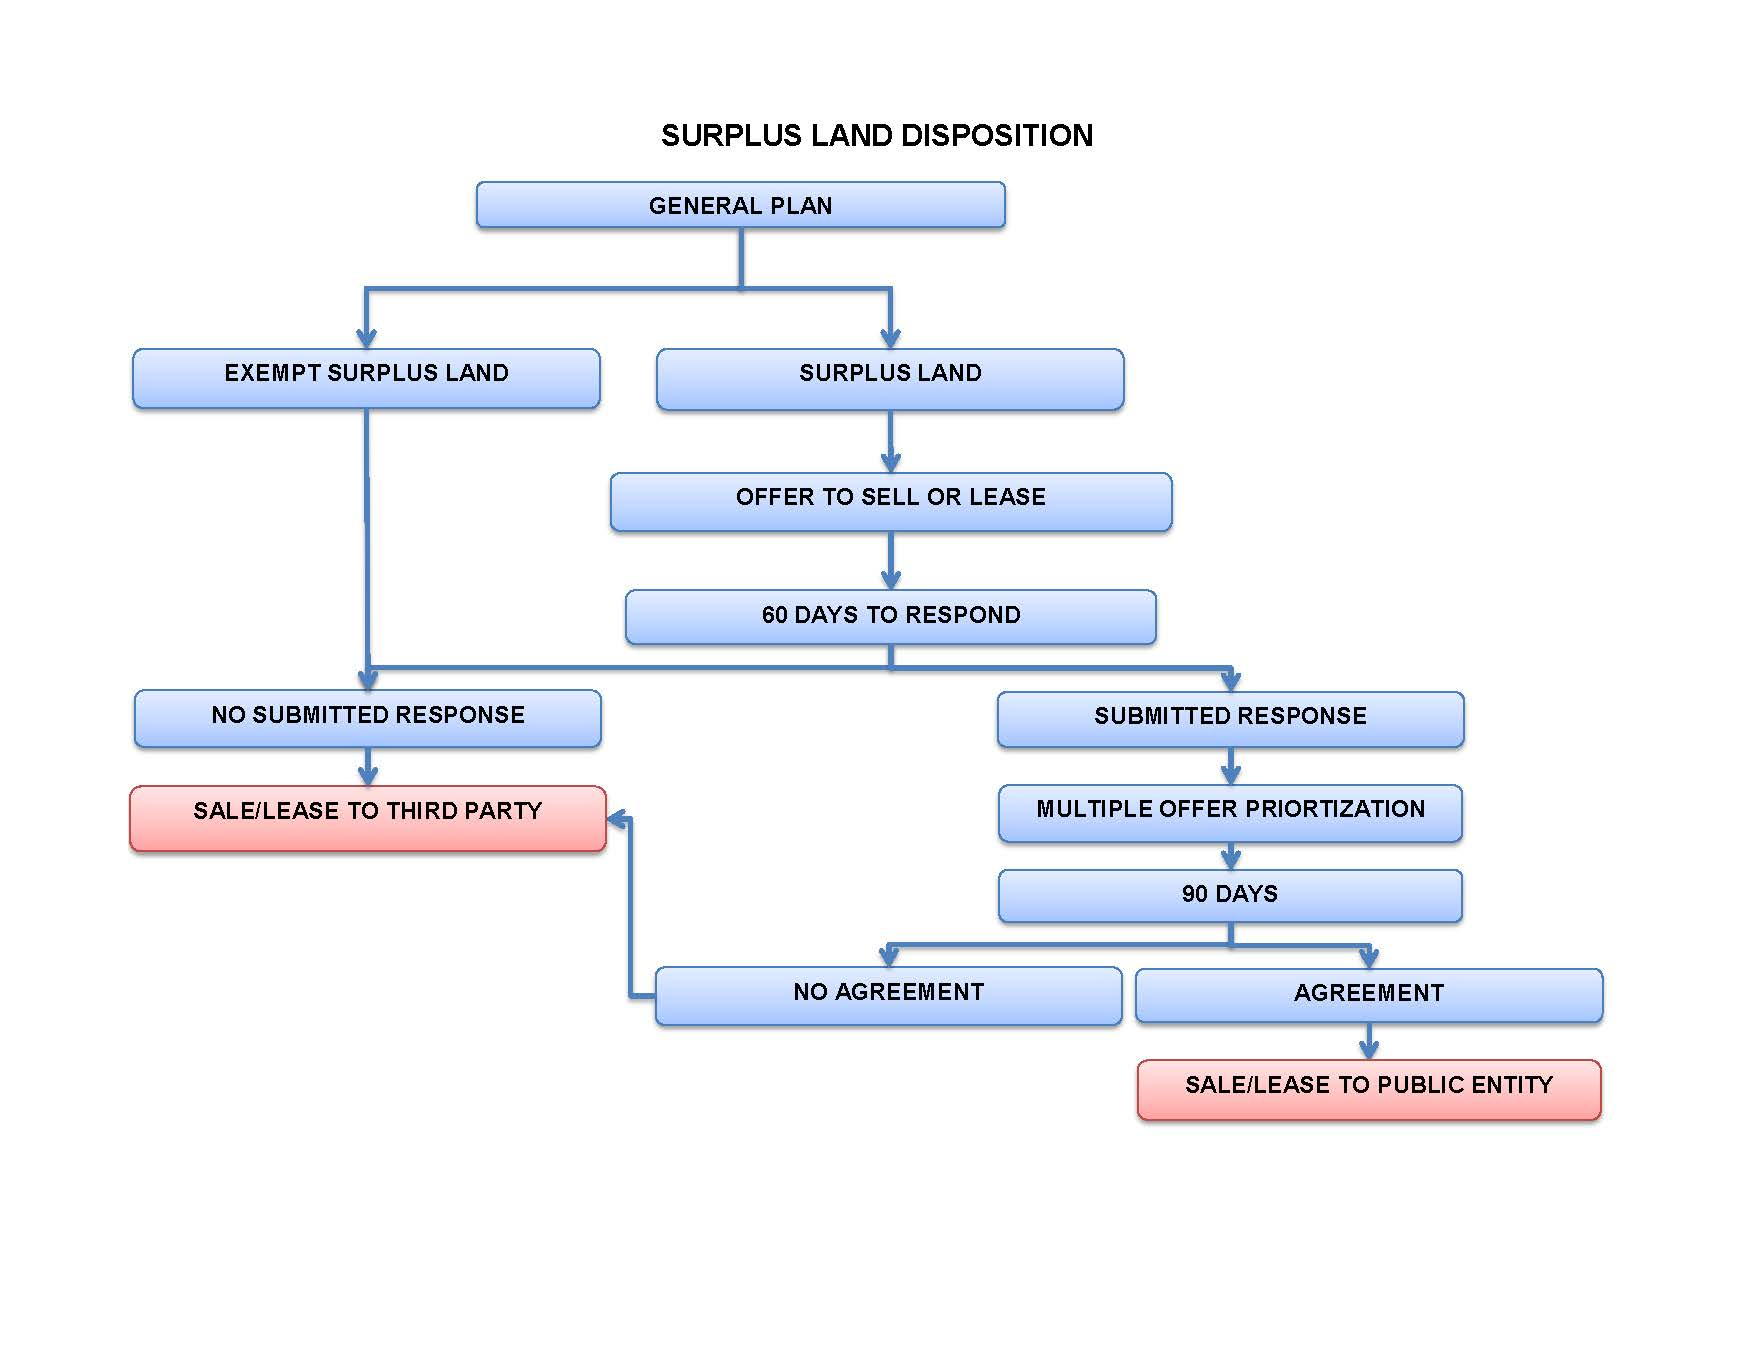 A simplified flow chart showing the surplus land disposition process.